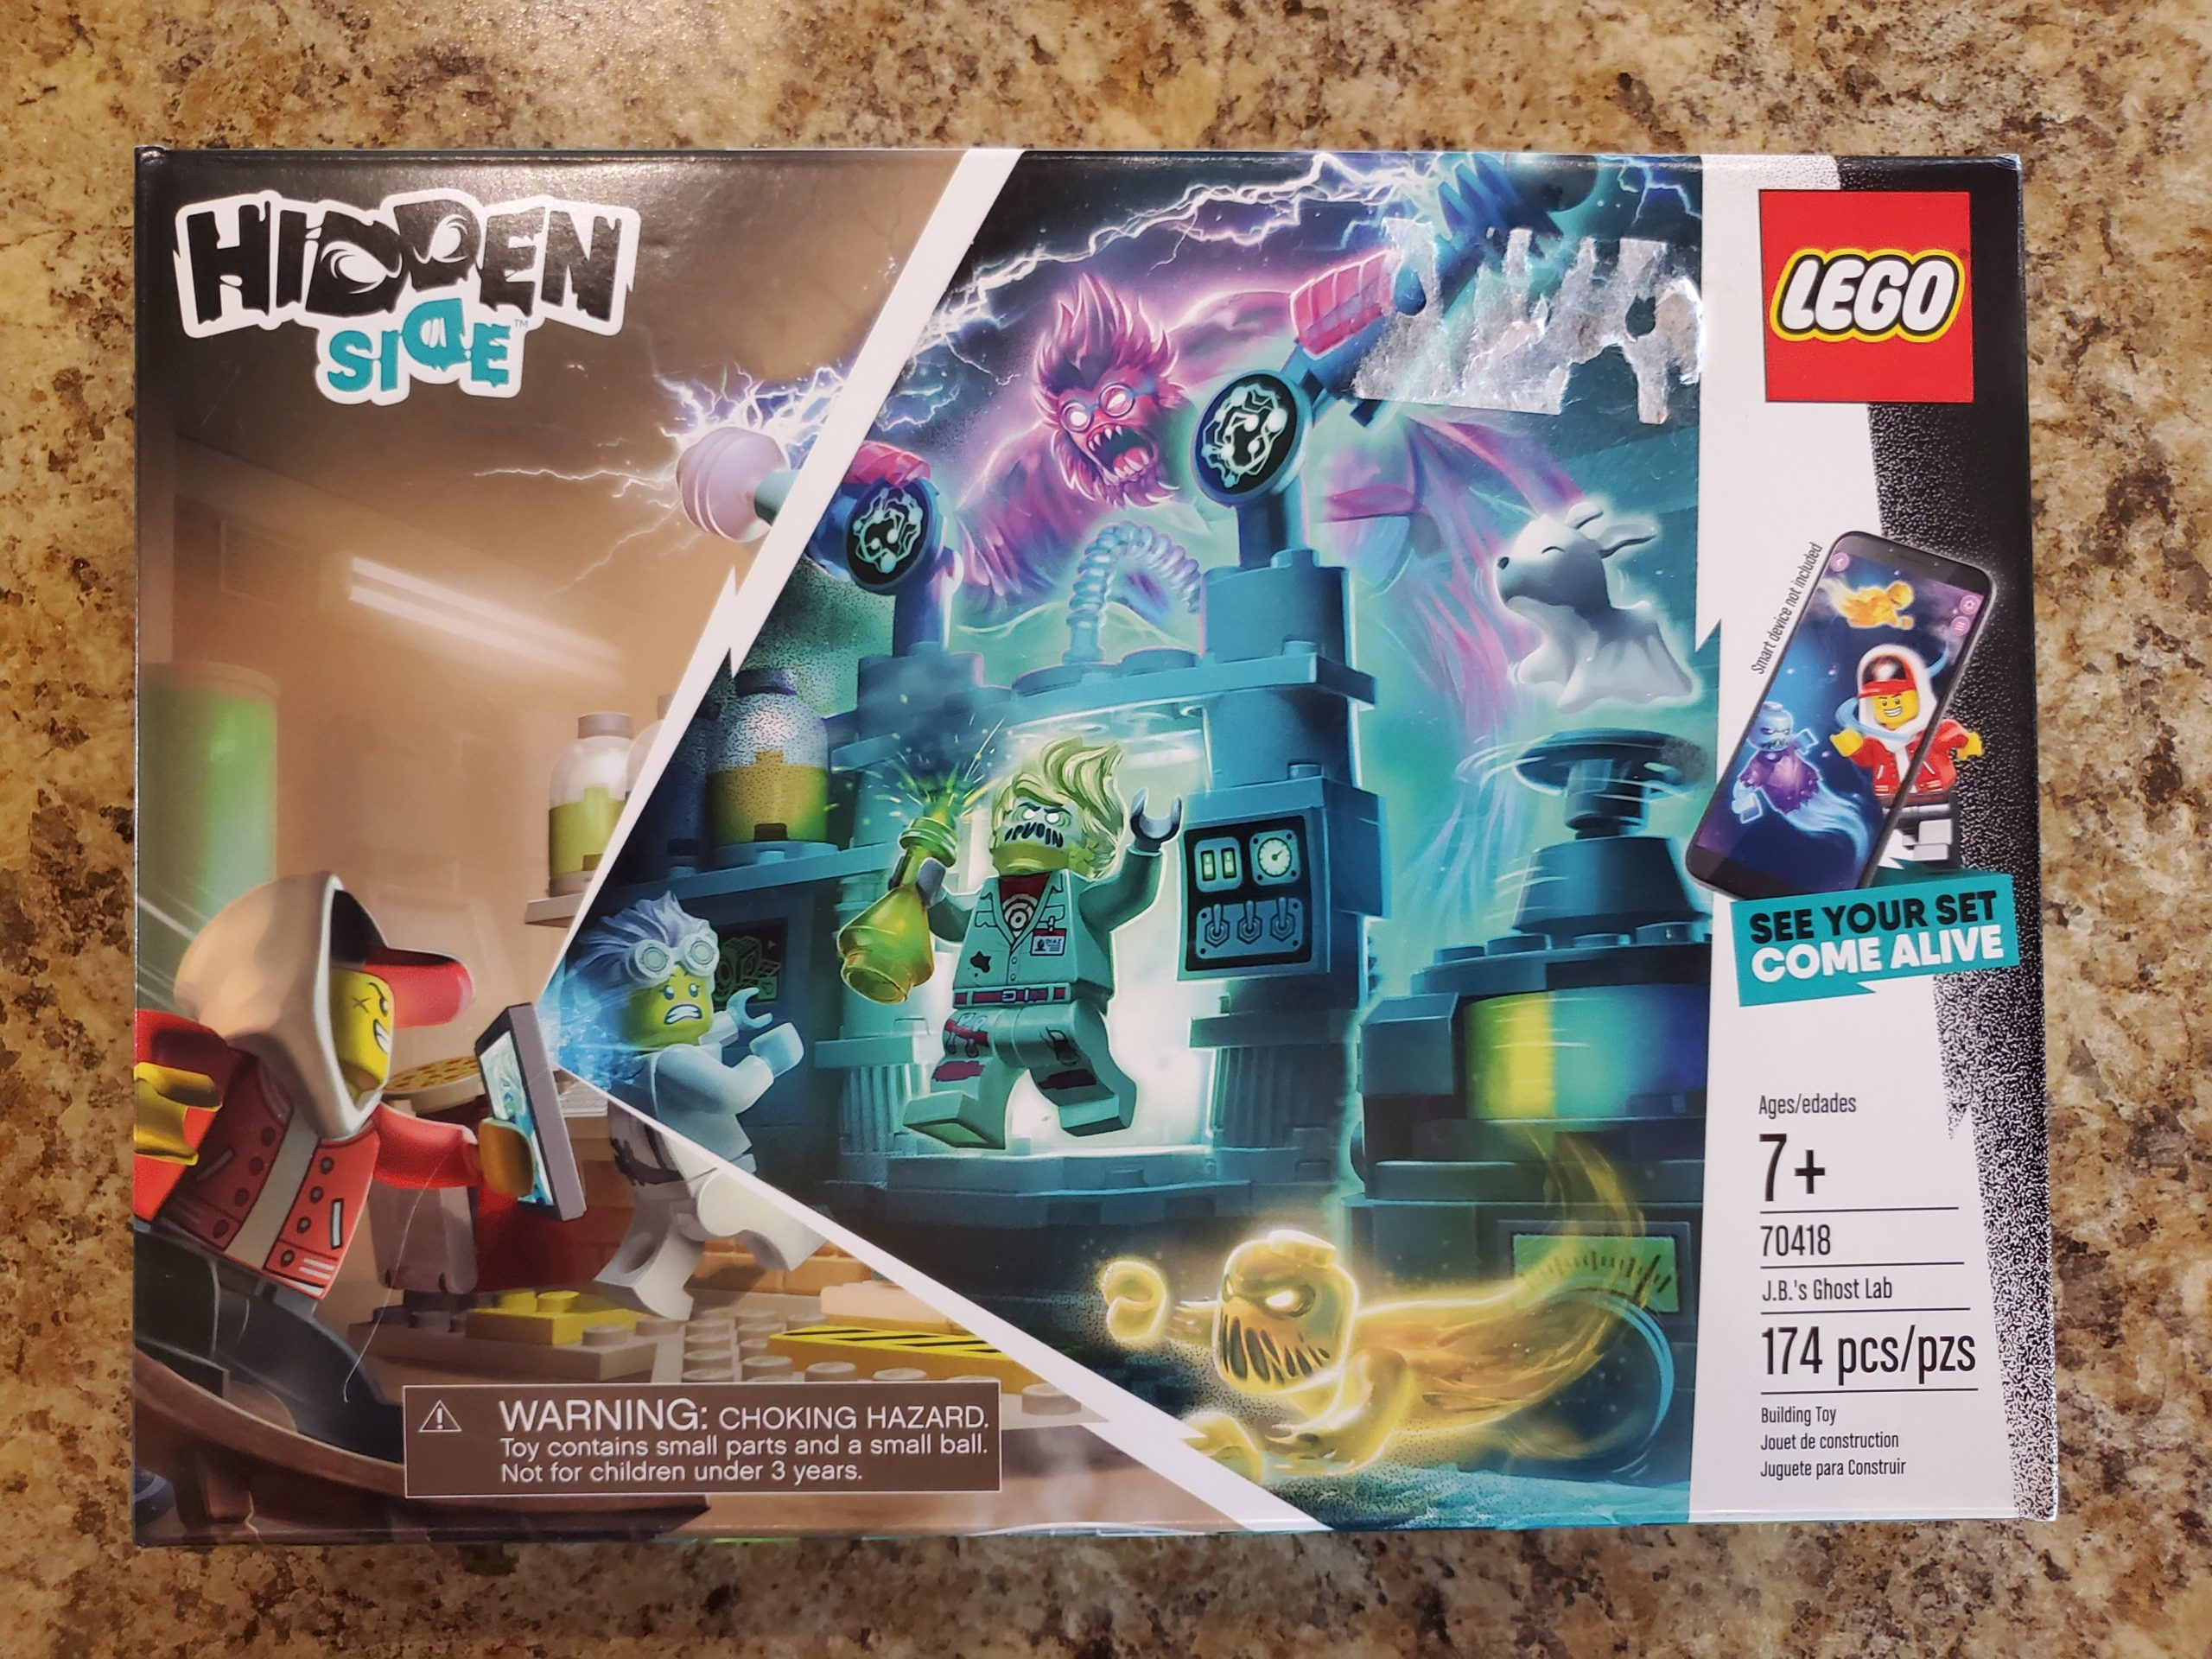 Lego 70418 The Hidden Side J.B./'s Ghost Lab Set With Interactive Games App NEW